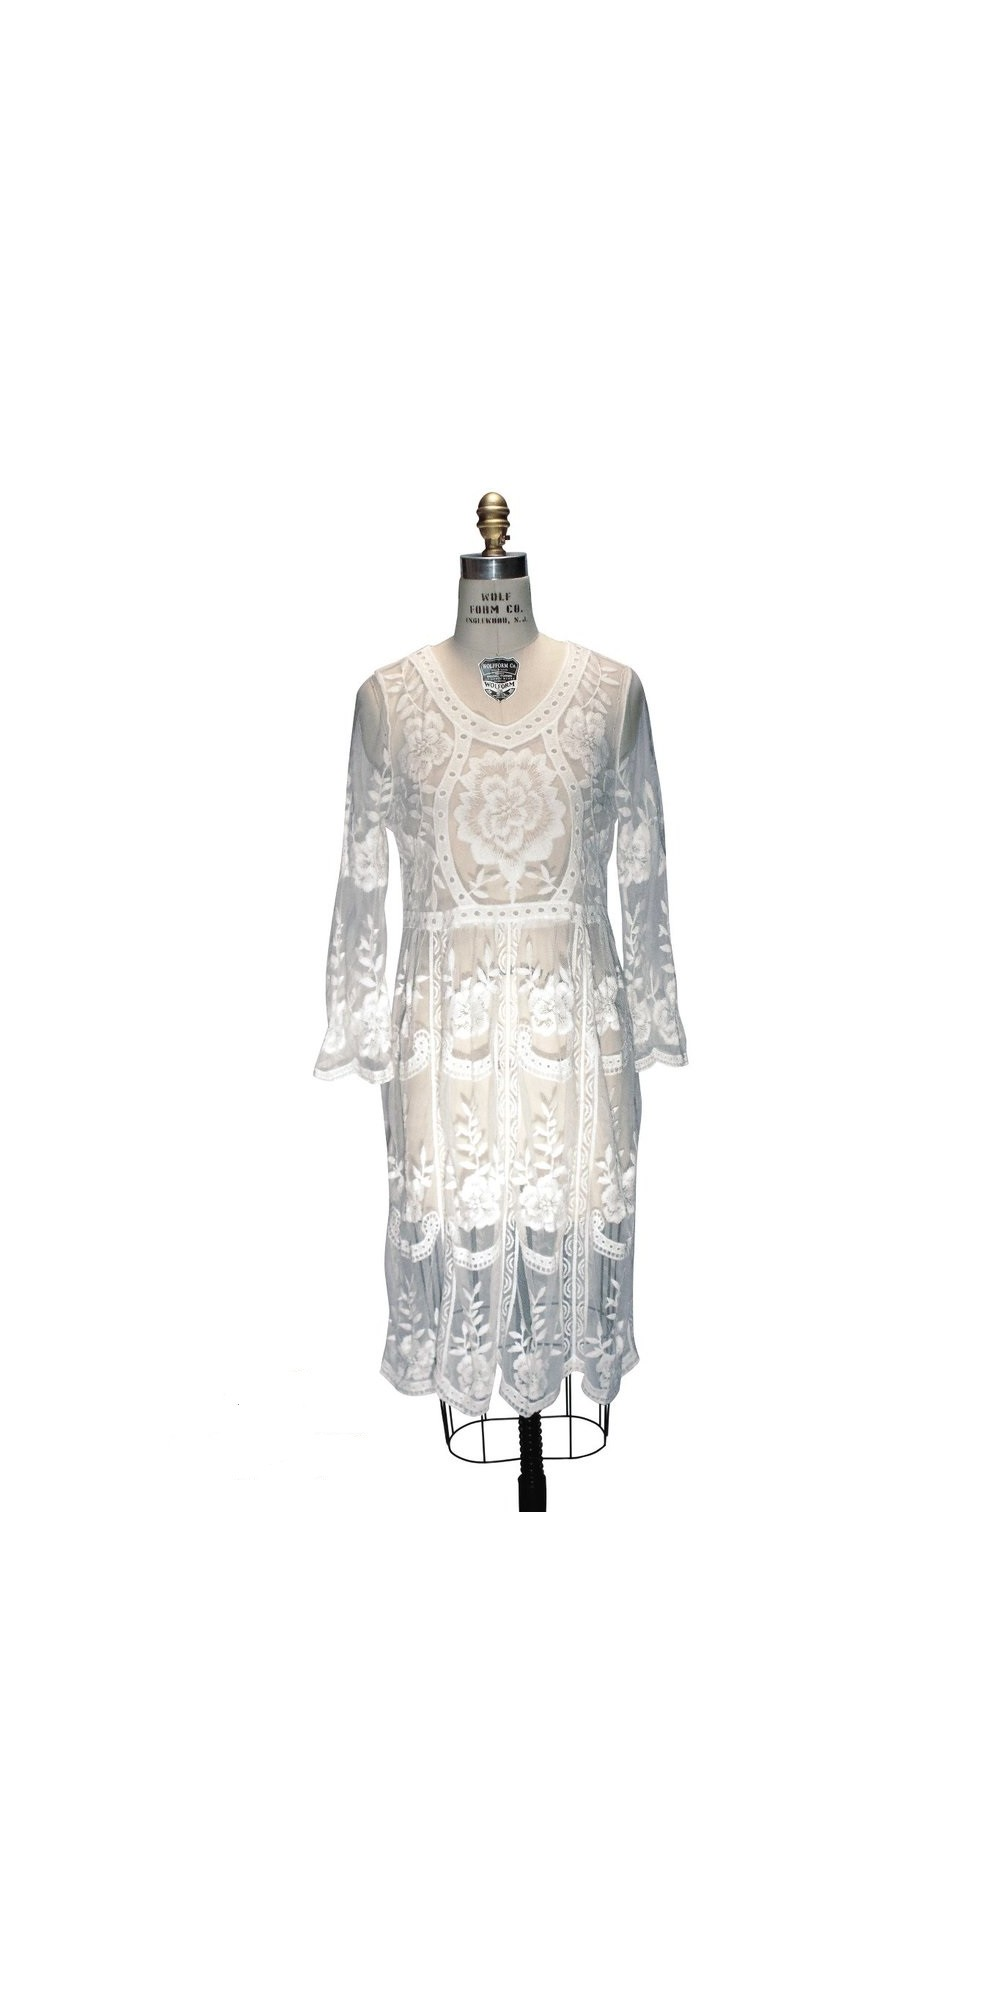 Wolf Haus Reggio Emilia 1920s inspired vintage lace bridal dress in white by the deco haus